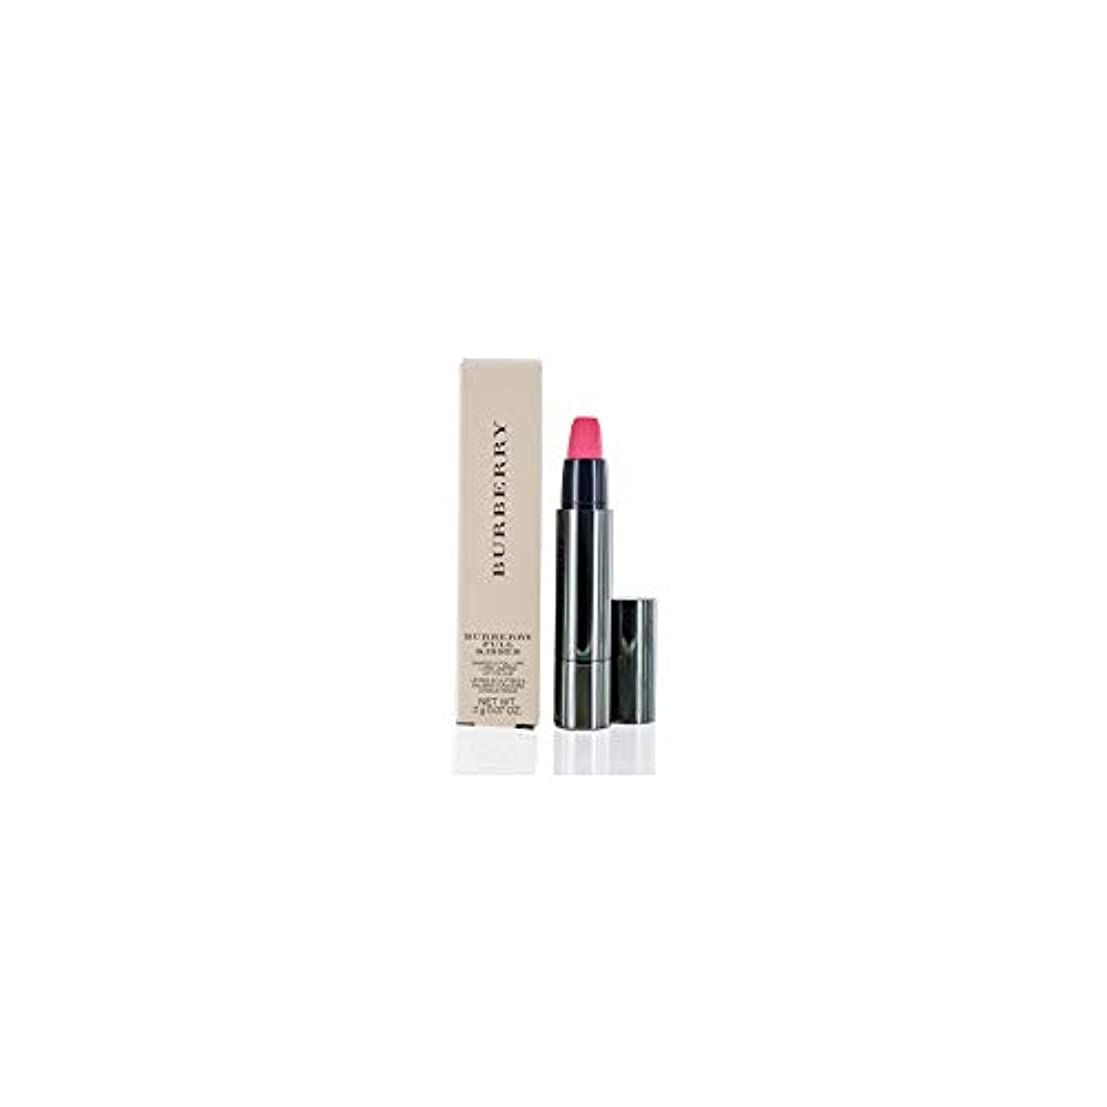 集まる馬鹿げたマトリックスバーバリー Burberry Full Kisses Shaped & Full Lips Long Lasting Lip Colour - # No. 513 Peony Rose 2g/0.07oz